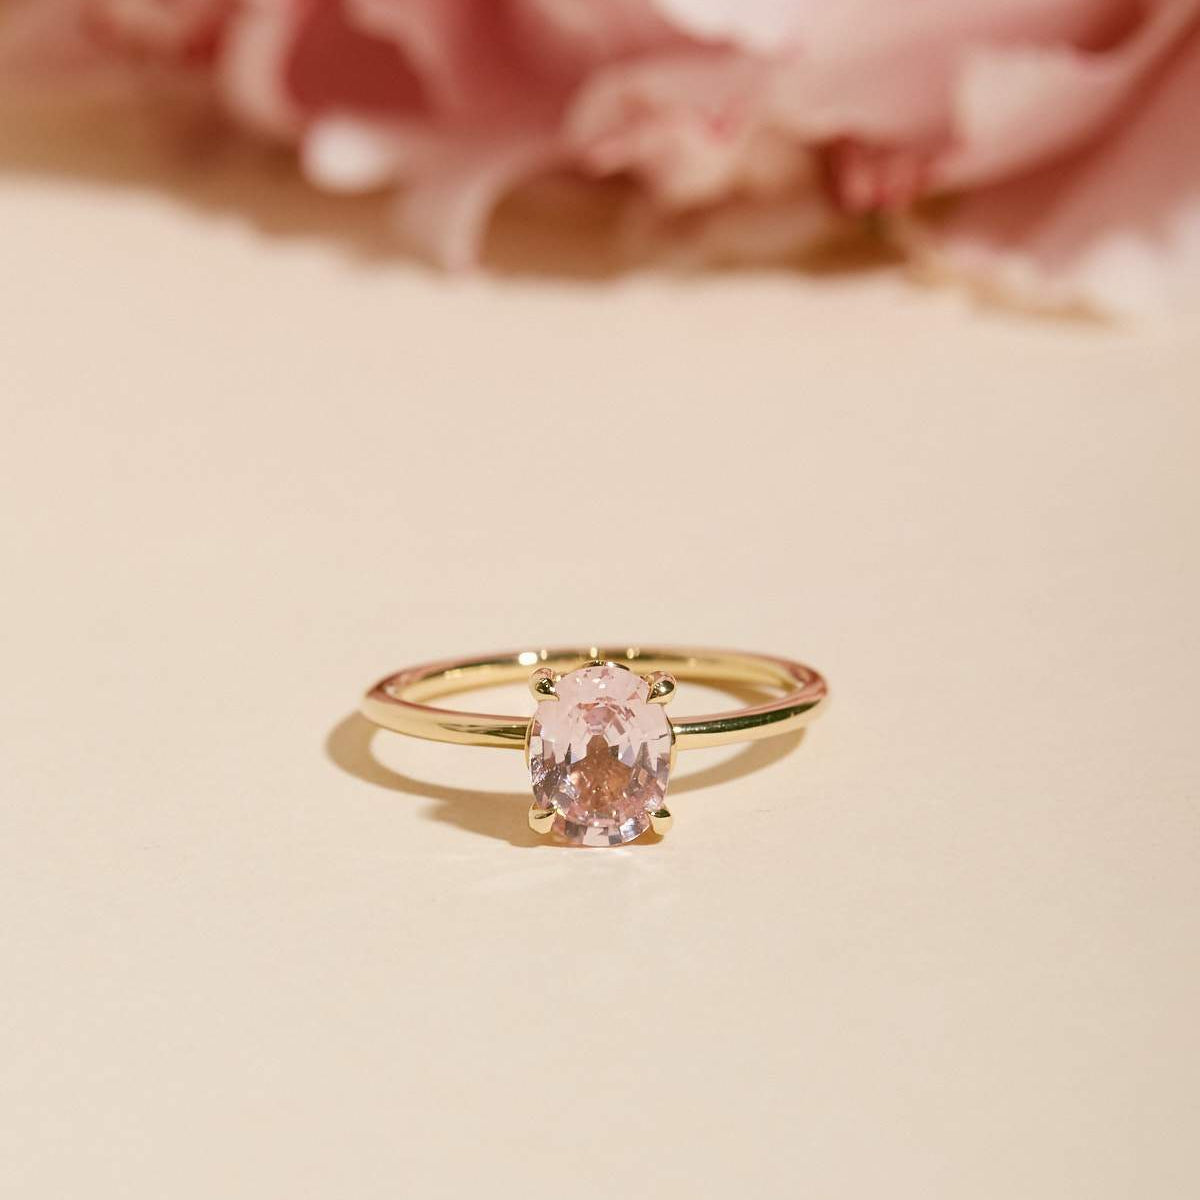 channel jewelry swirl with and rings pink twirl wedding set cut nl halo dark round semimount diamond side engagement wg ring in baguette prong sapphire stone embellished gold white